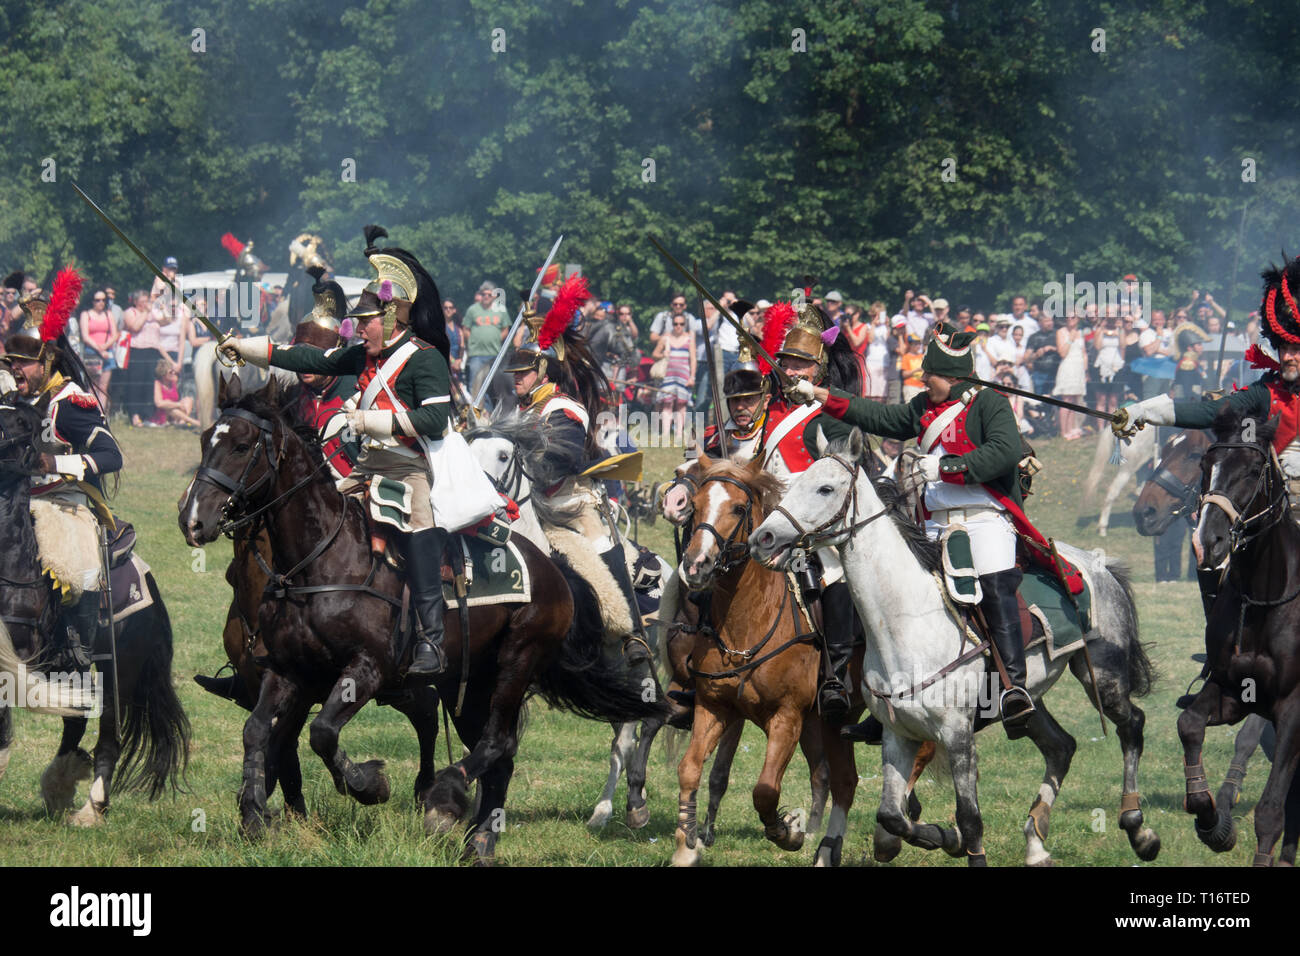 Waterloo, Belgium - June 18 2017: A cavalry charge during the re-enactment of the battle at Waterloo. - Stock Image